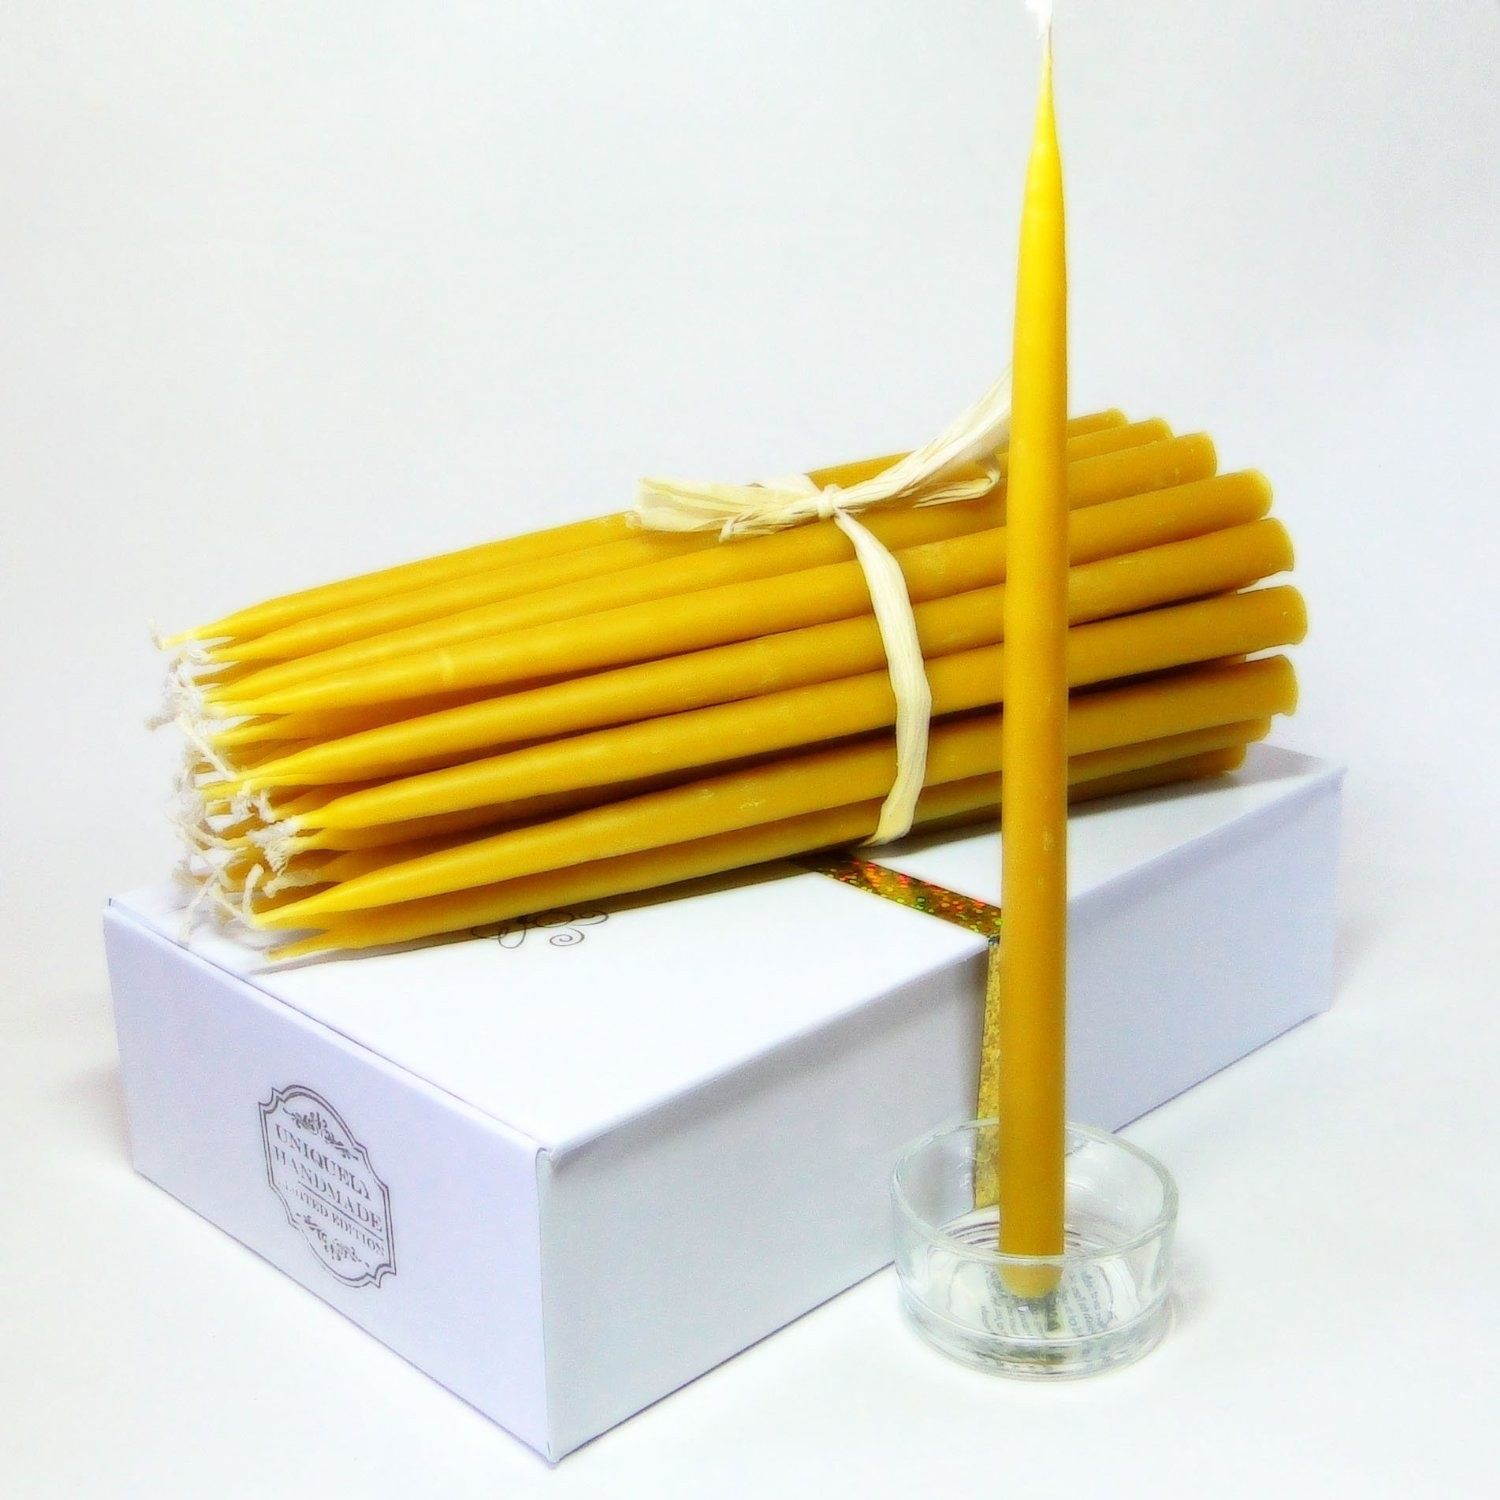 100% Beeswax 2-Hour Organic Candles Pack of 36 Pcs